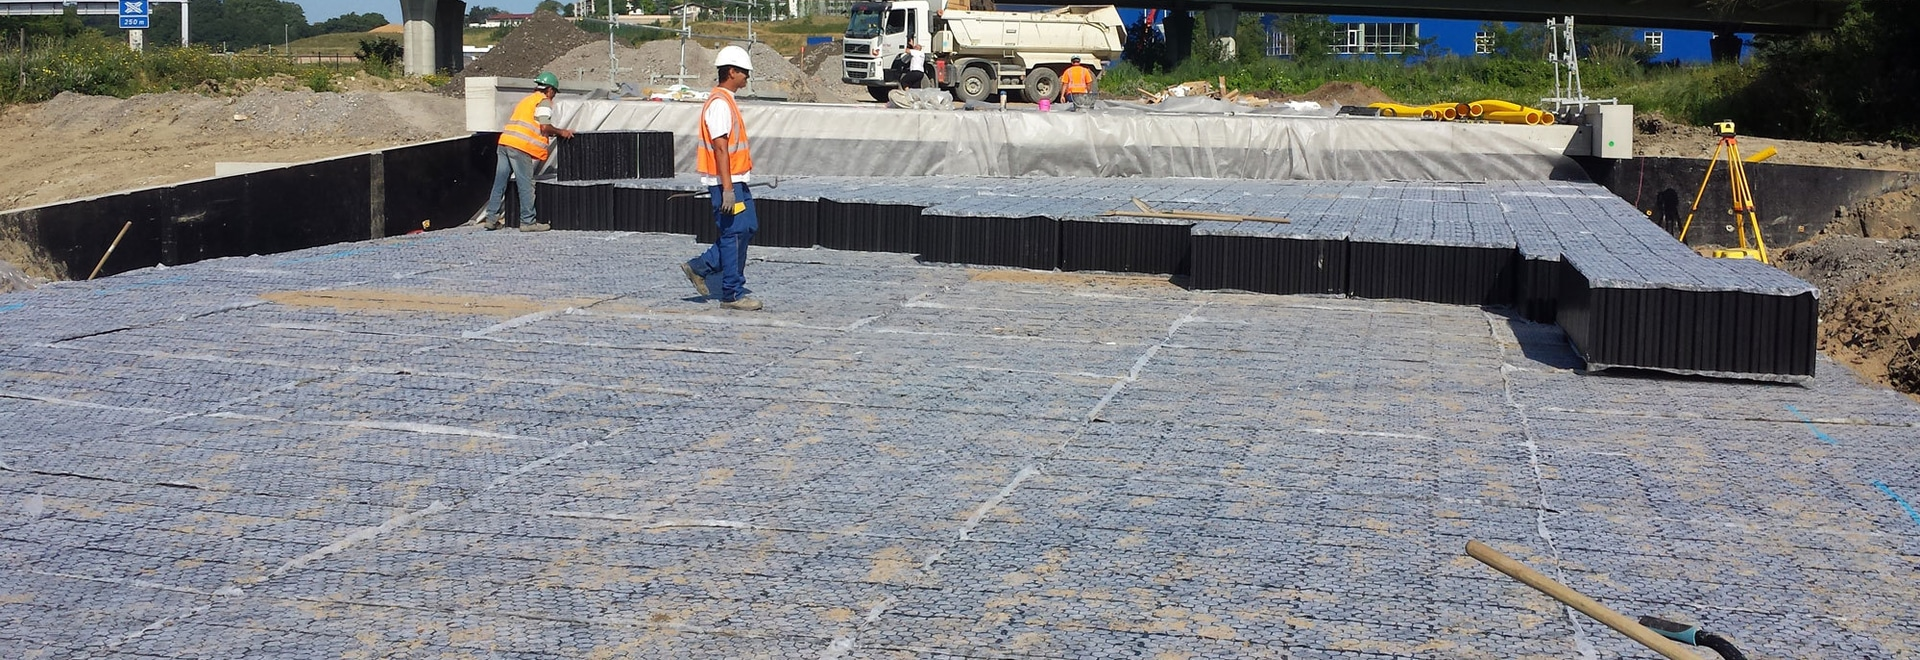 Lightweight honeycomb structures for road and building embankment